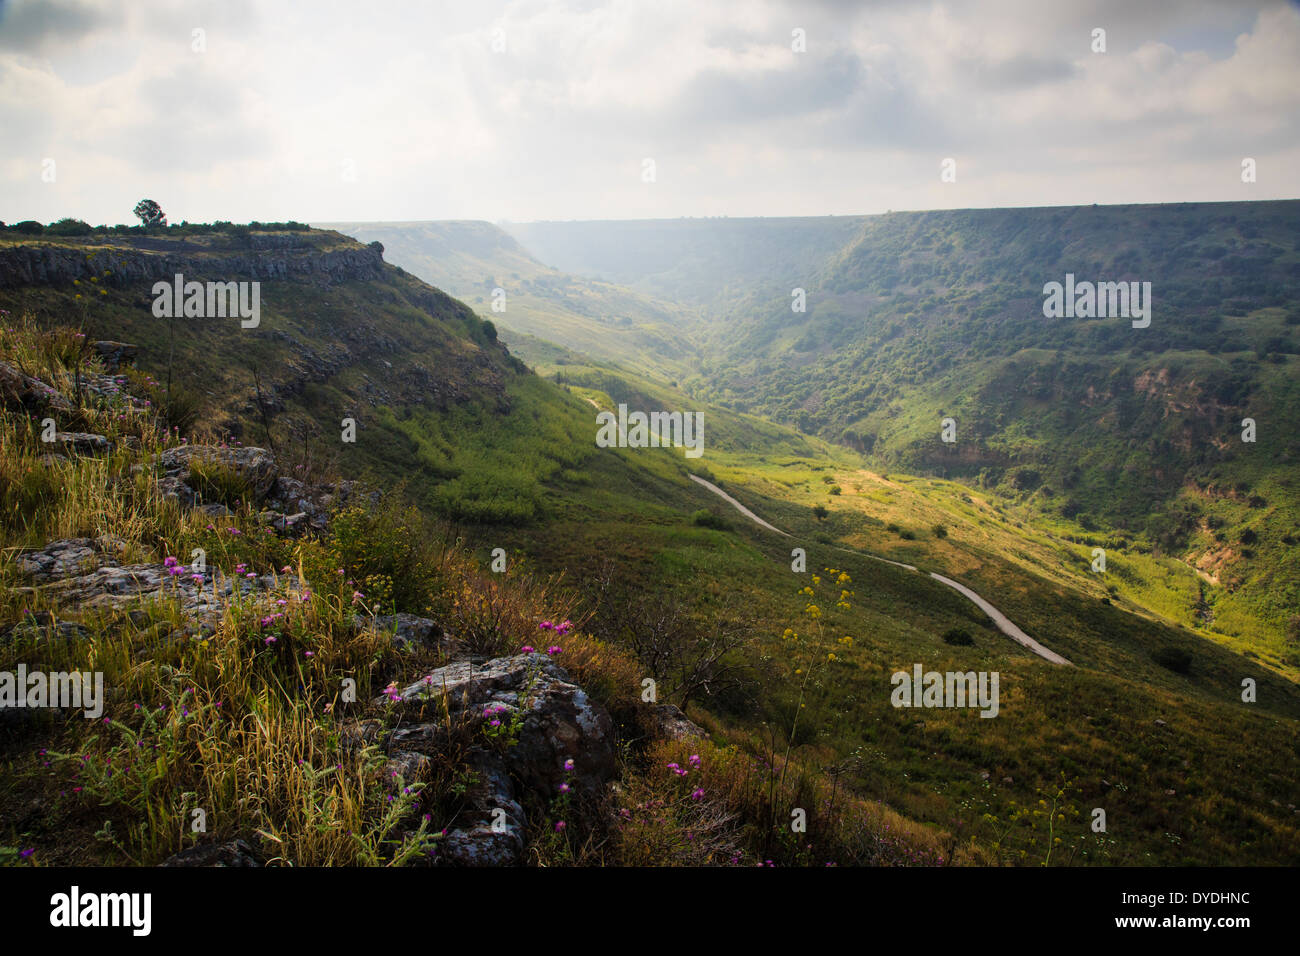 Gamla Nature reserve, Golan Heights, Israel. Stock Photo